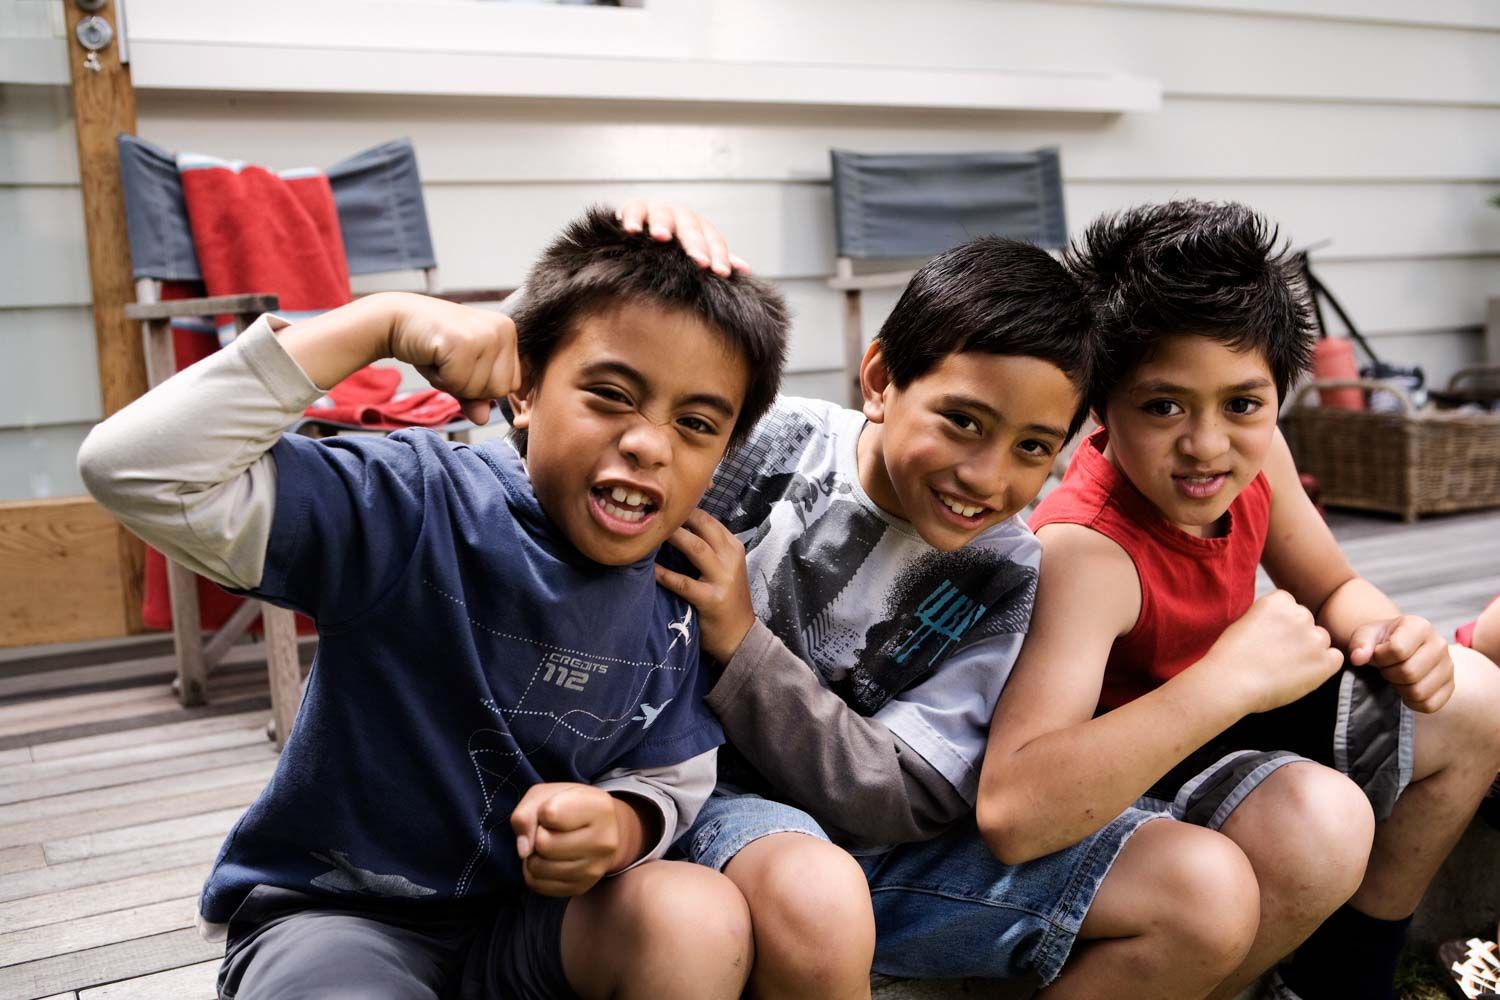 Three Young boys flexing